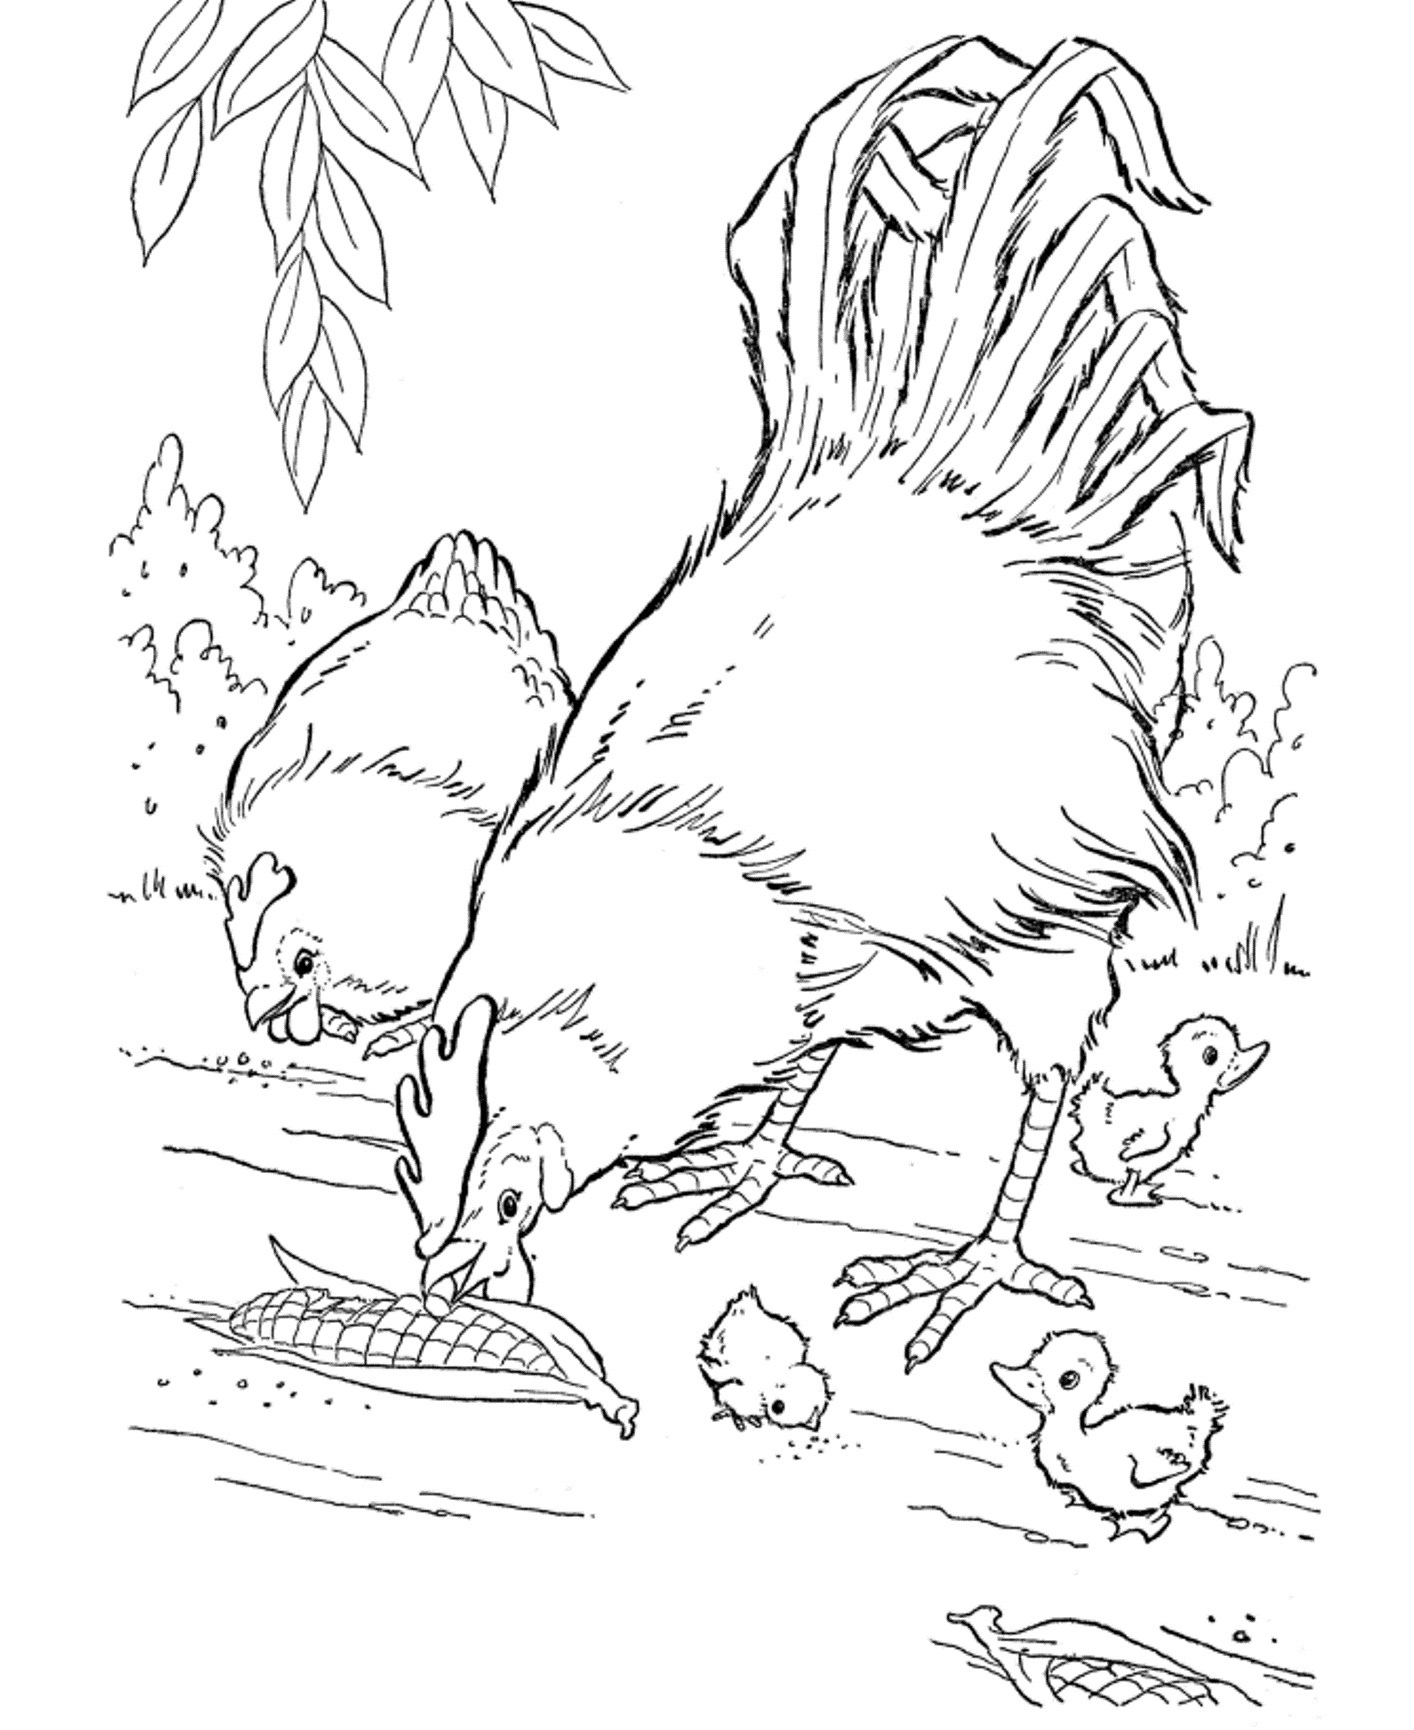 Free animals coloring pages for kids to print - Farm Animals Coloring Page